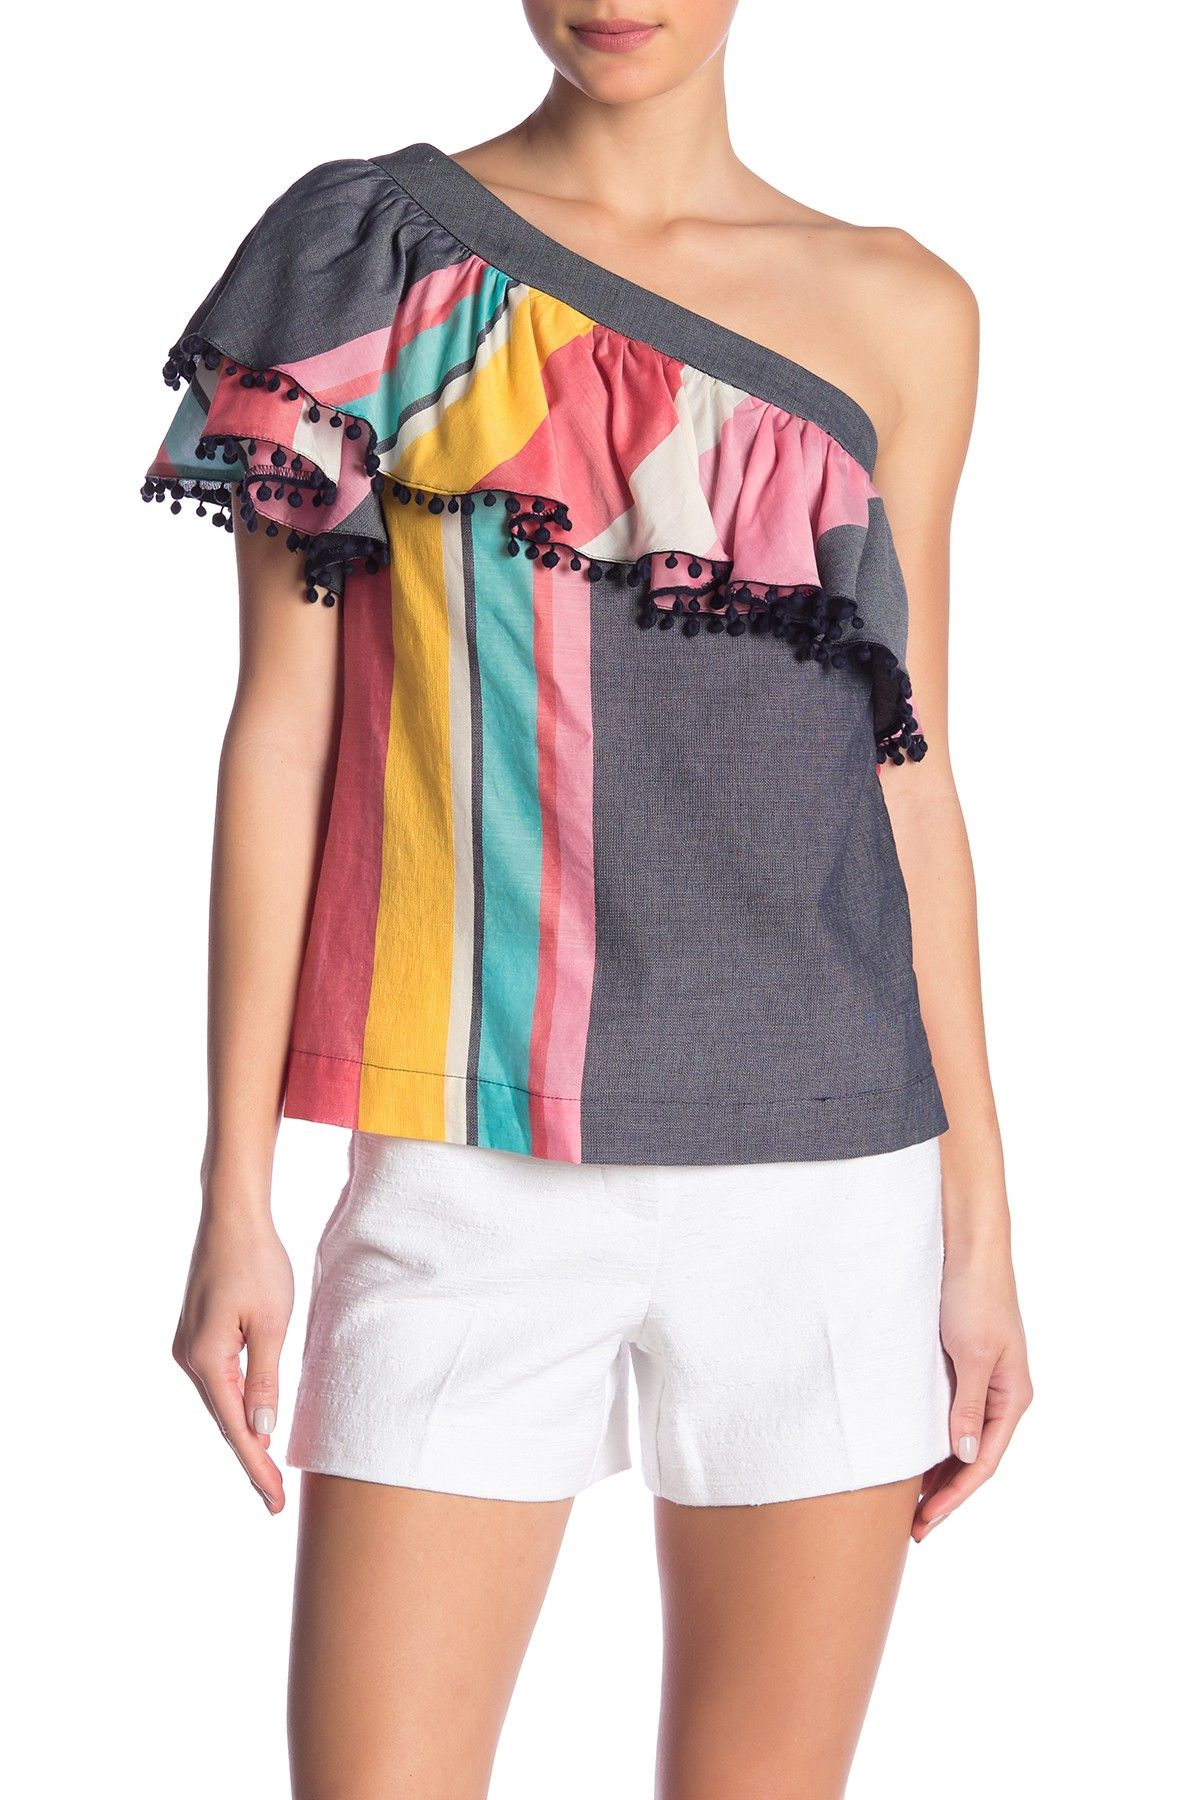 5304c01472a02 Trina Turk - Los Angeles One Shoulder Pompom Trim Blouse. Free Shipping on  orders over